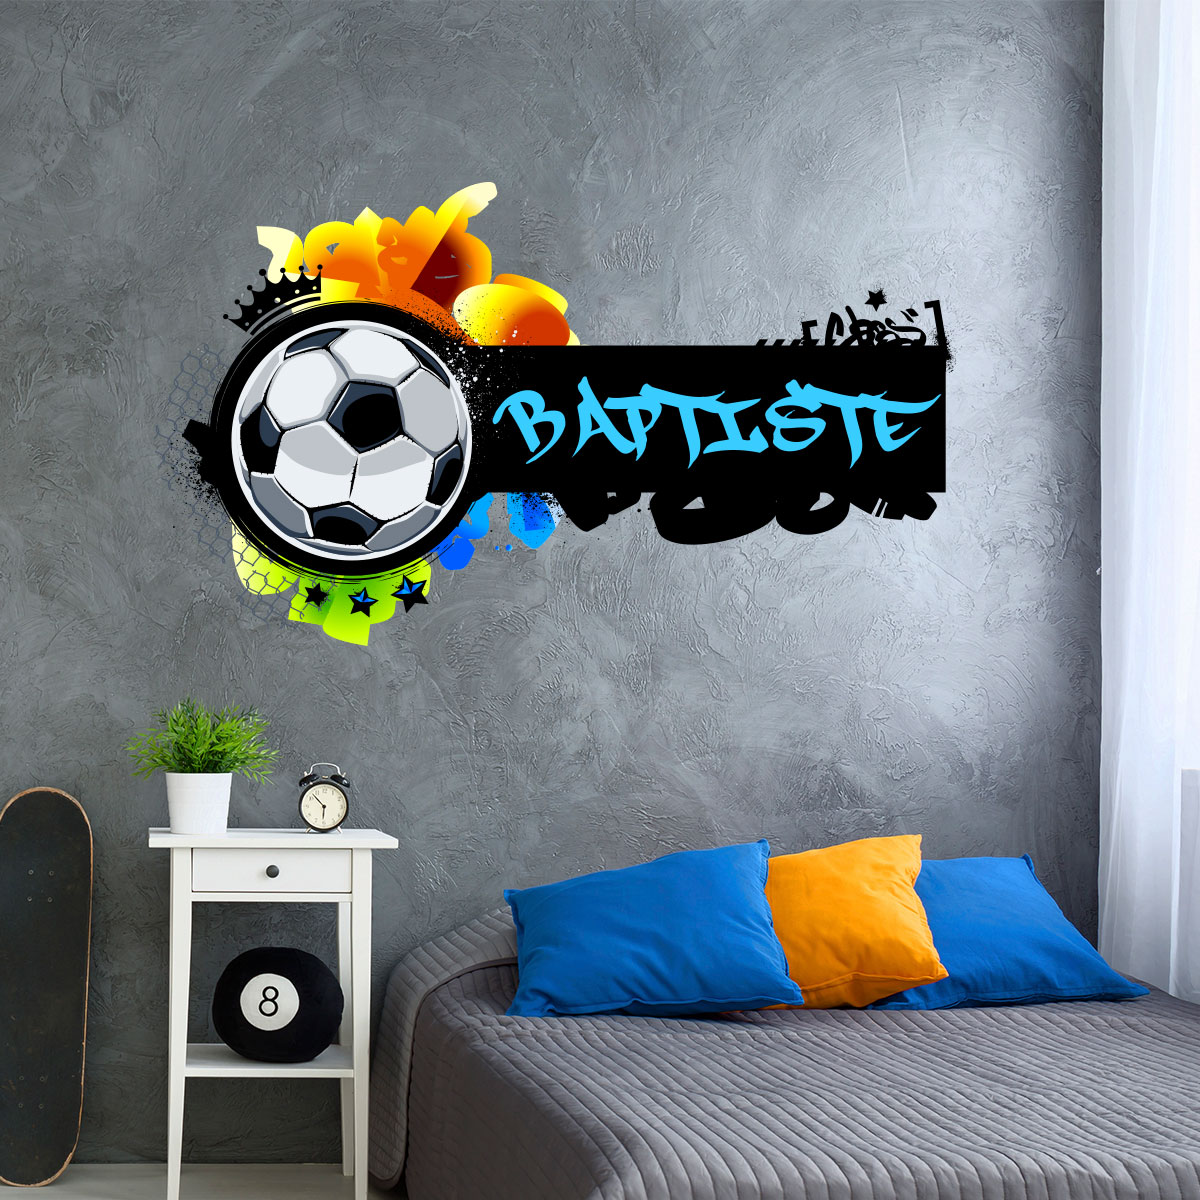 Sticker Prénom Personnalisable Football Graffiti Stickers Sports